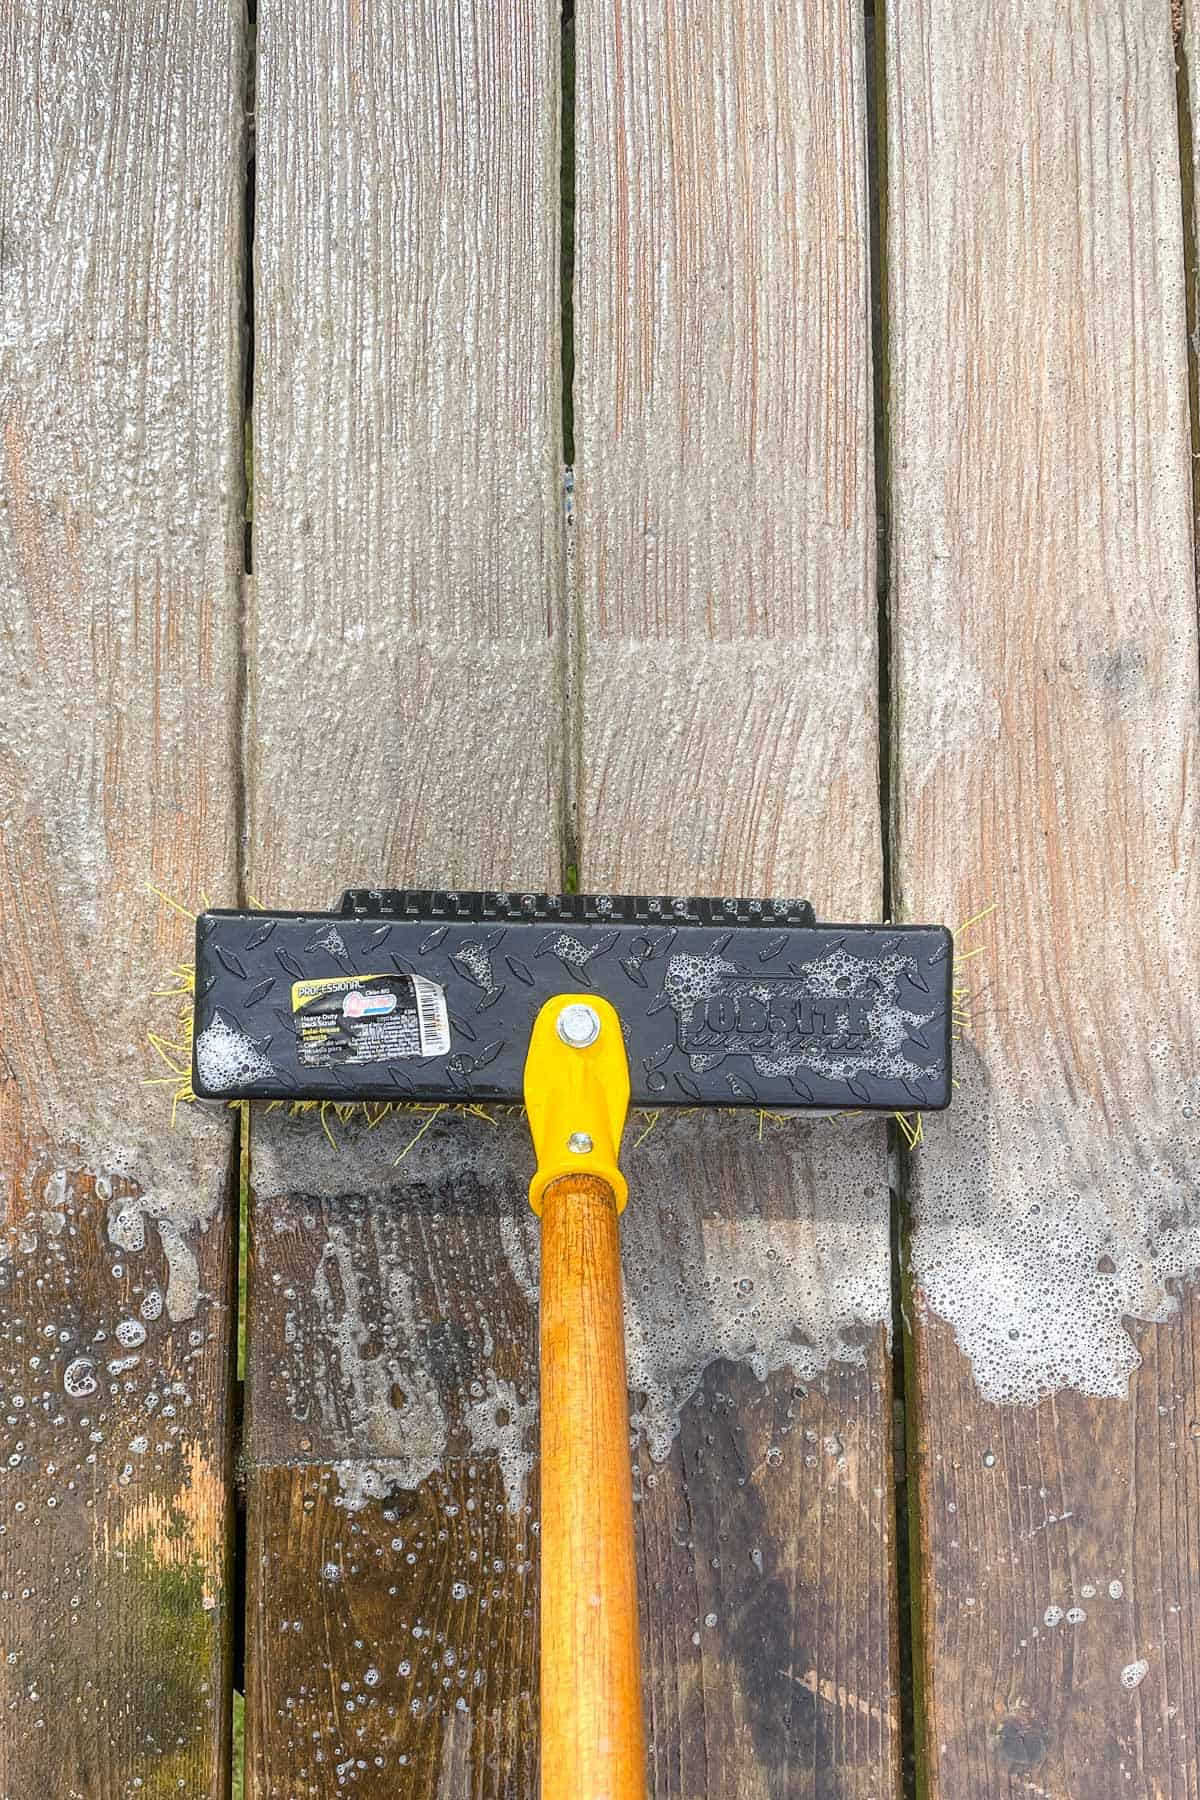 cleaning the surface of a deck with deck cleaner and a scrub brush